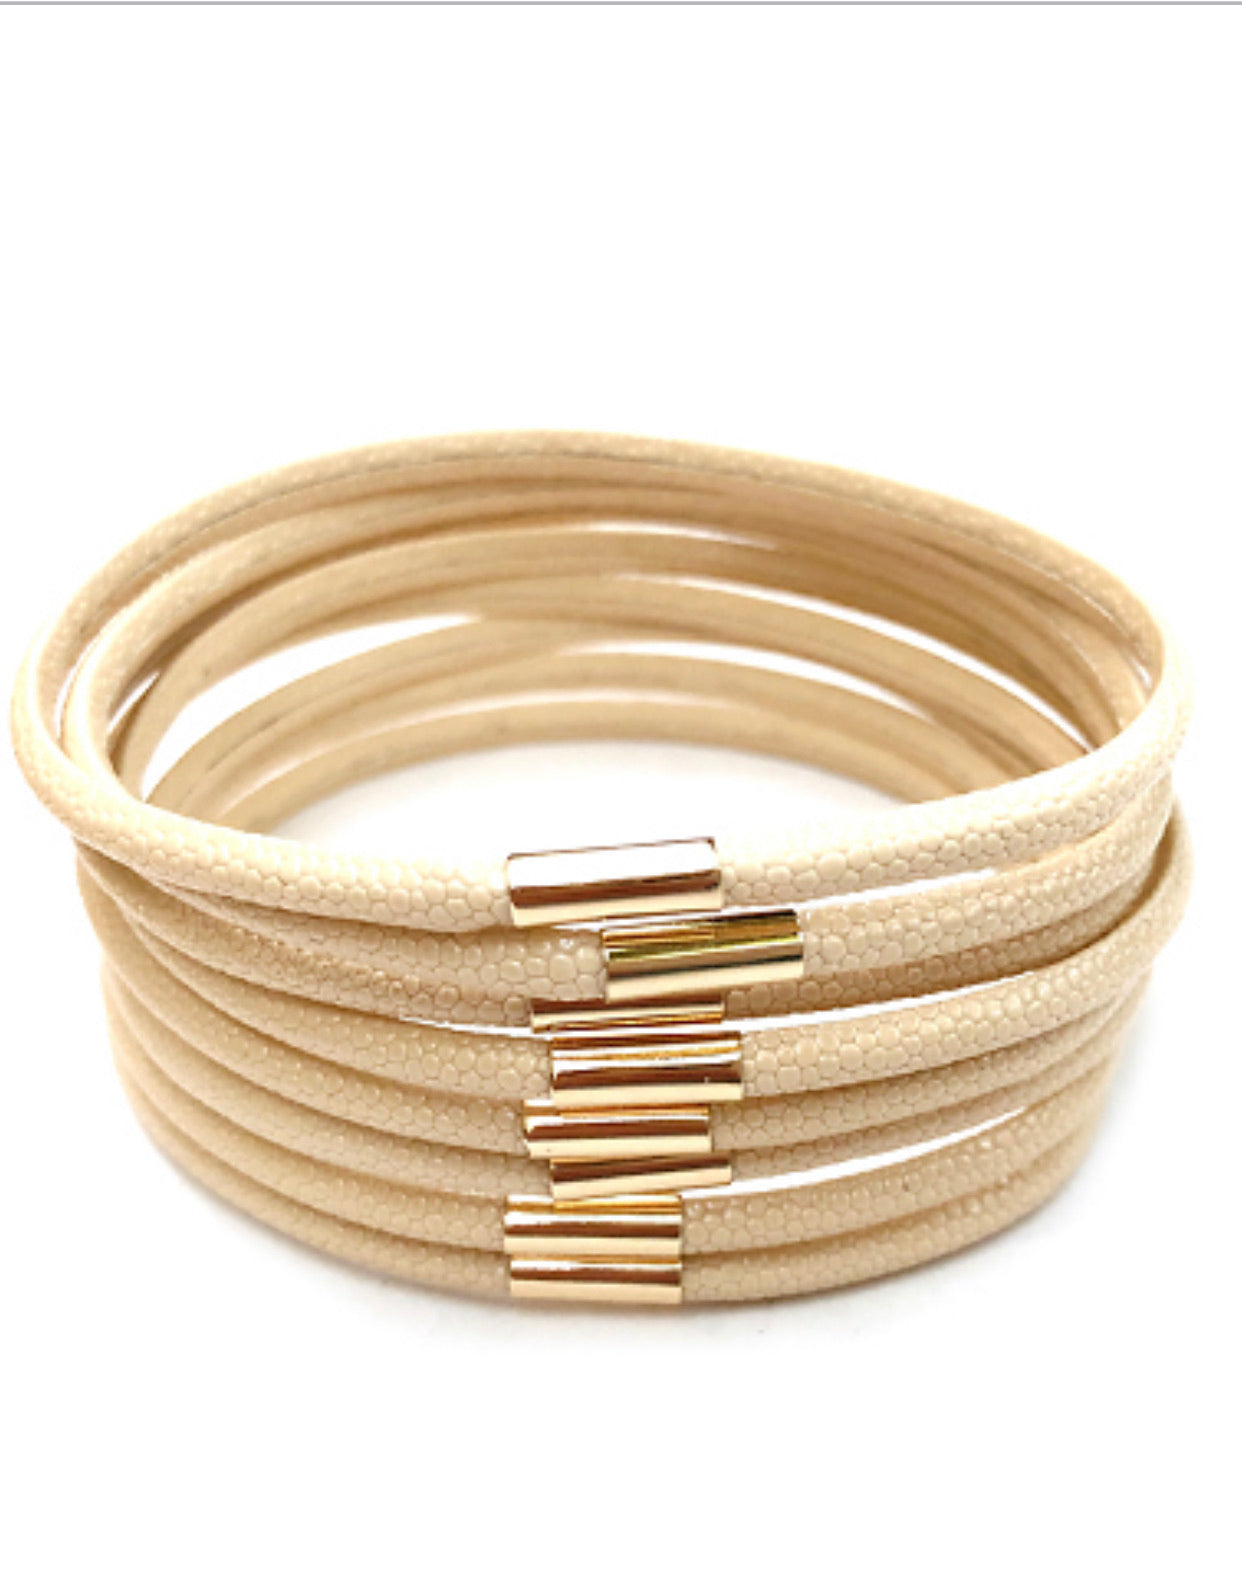 8 Row Color Leather Bracelet